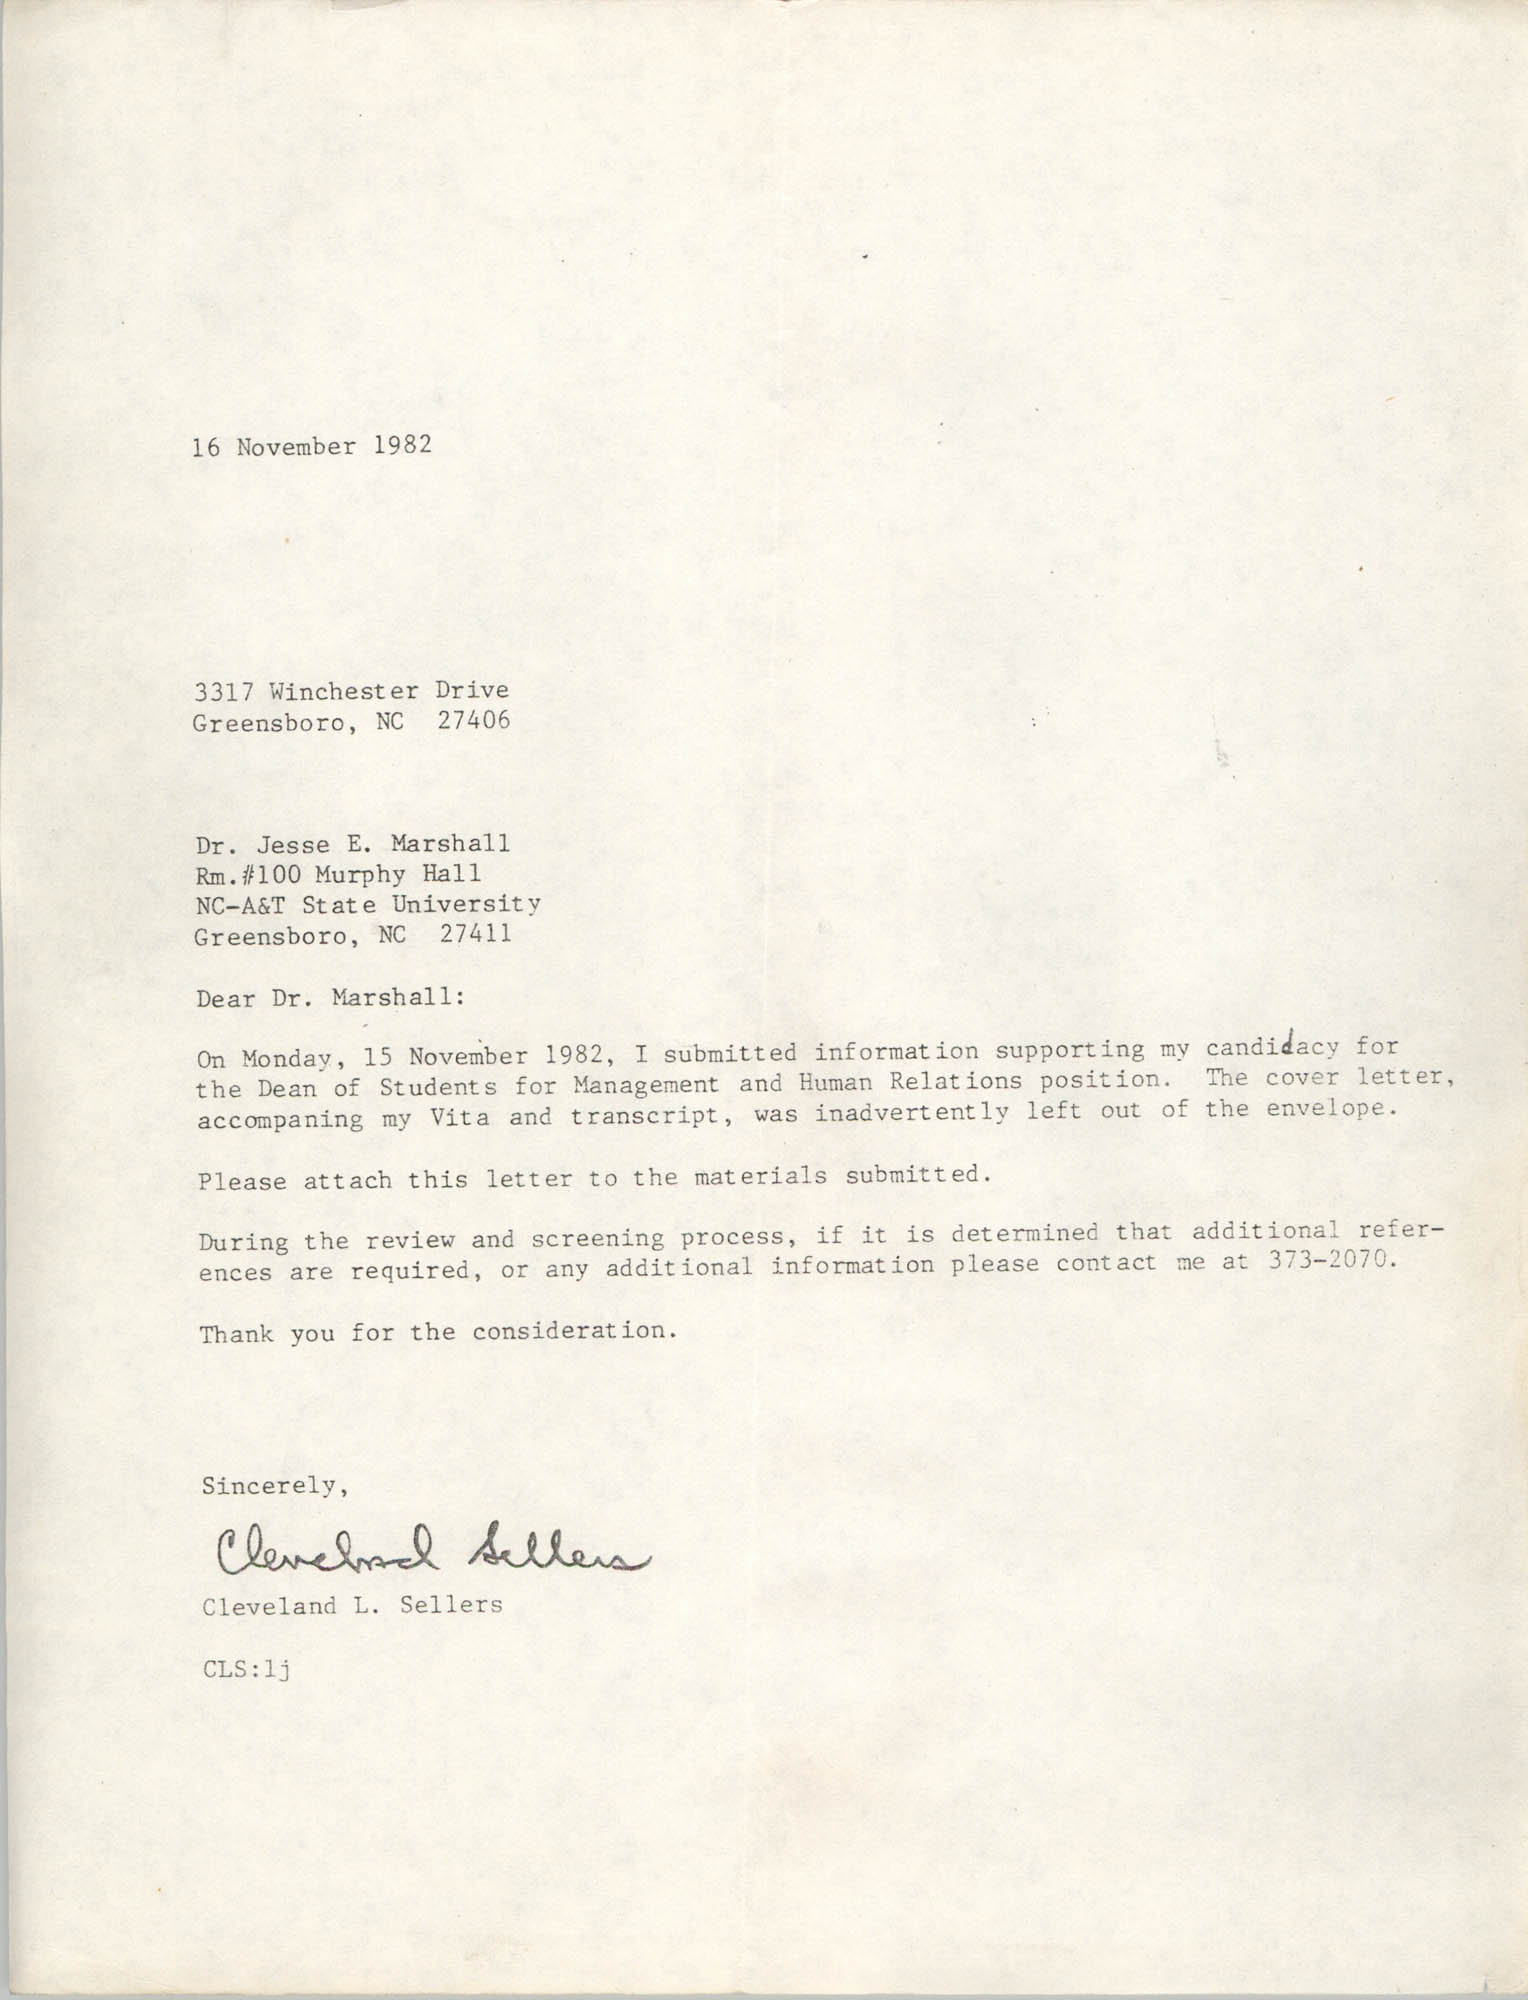 Letter from Cleveland Sellers to Jese E. Marshall, November 16, 1982